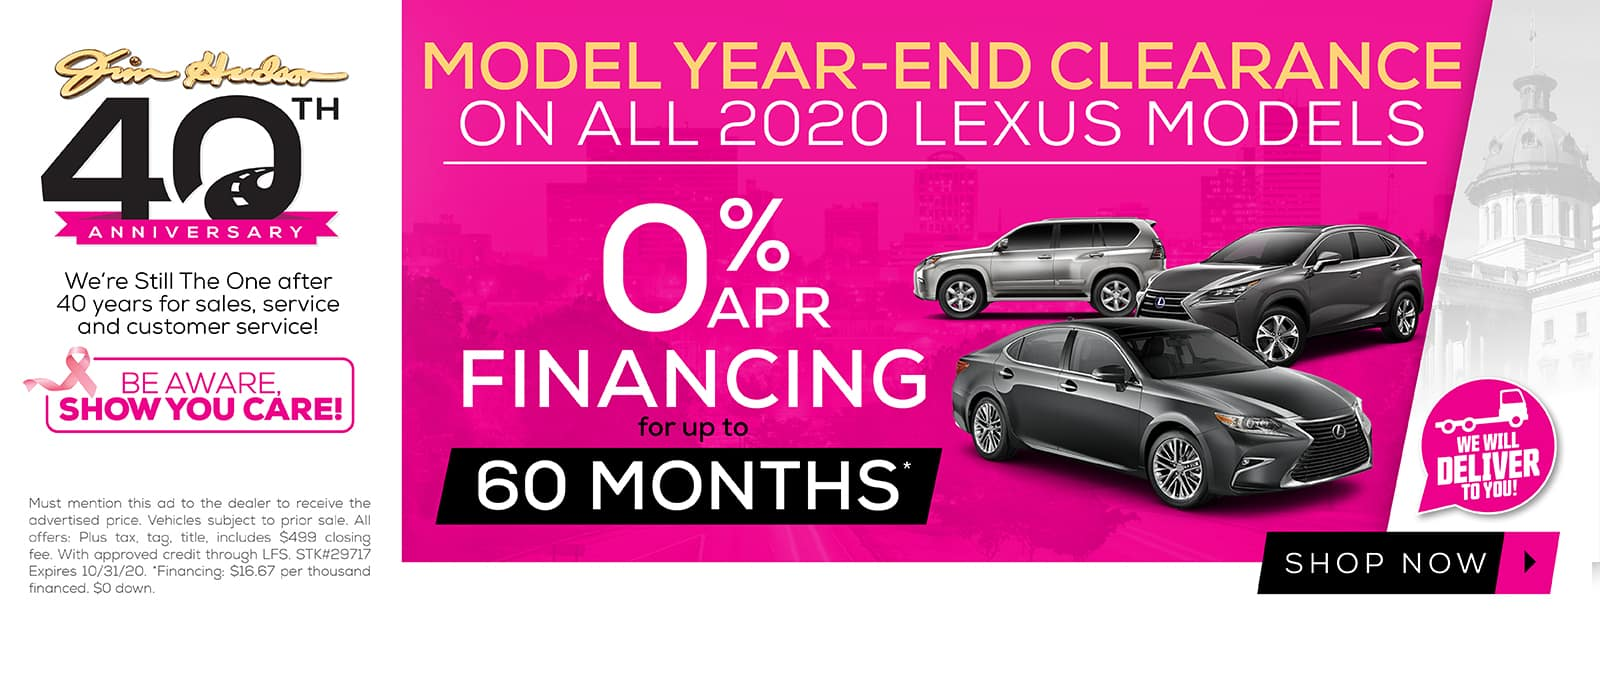 Model Year-End Clearance